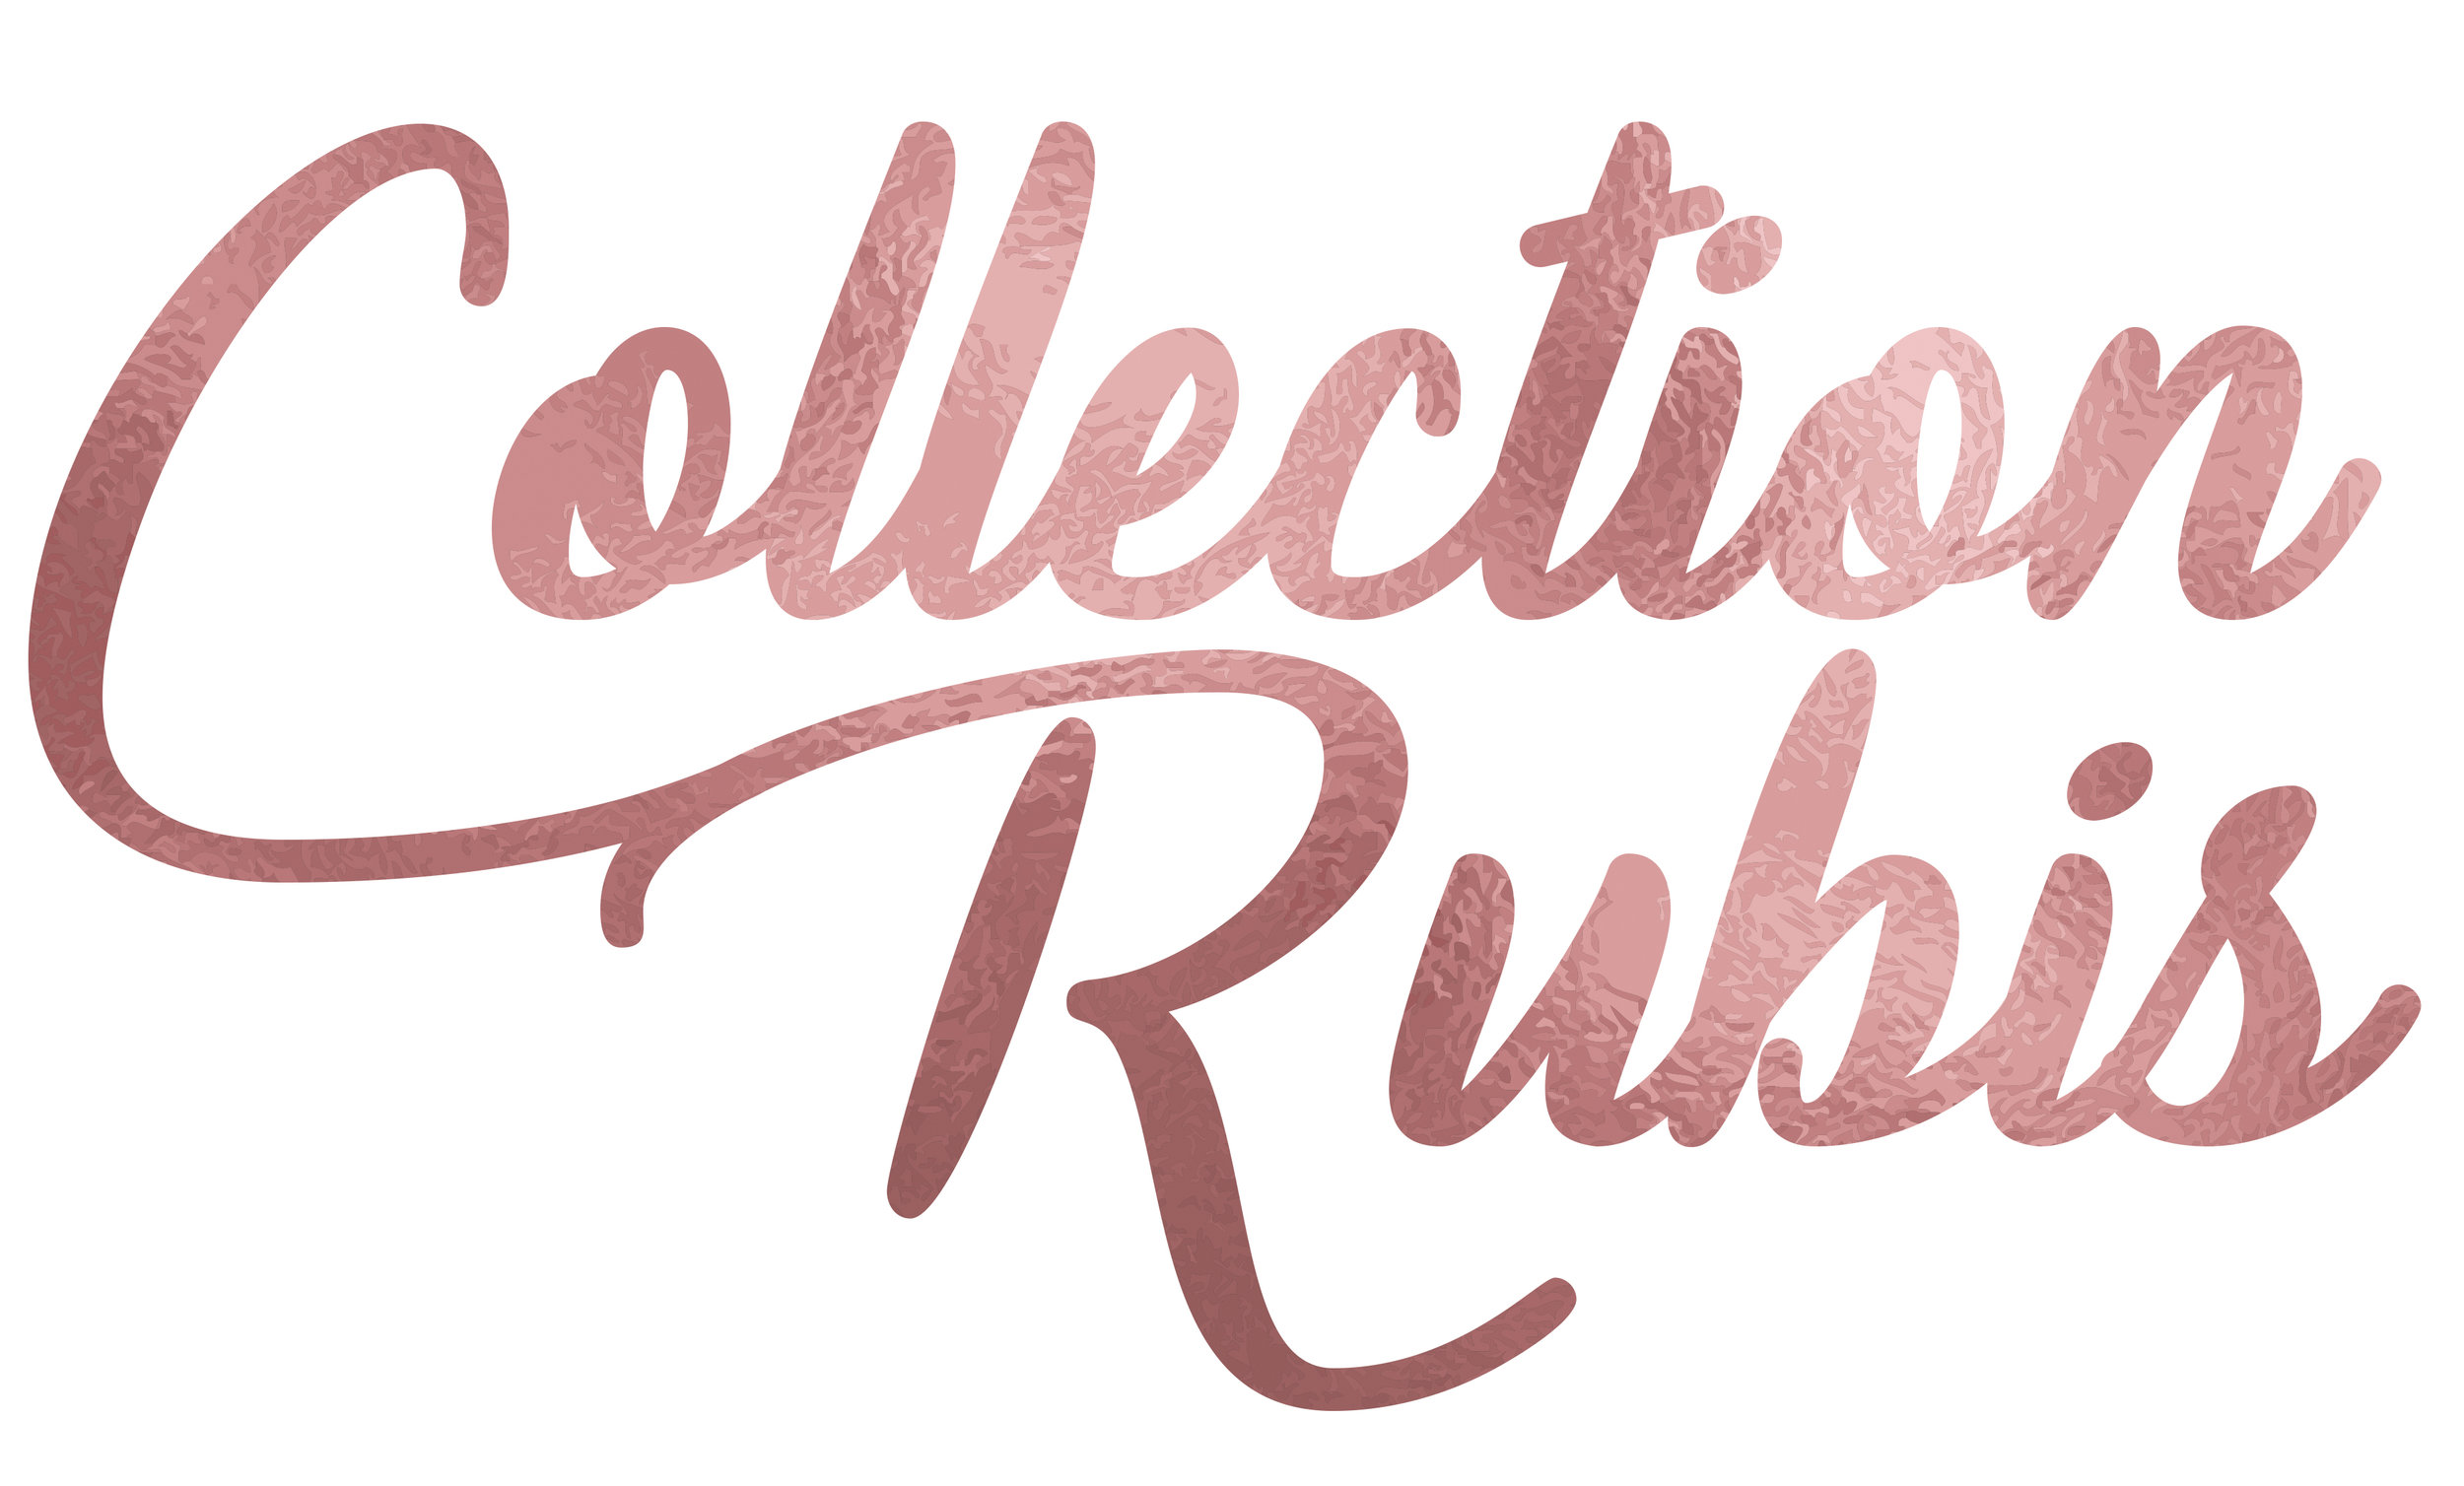 collection rubis.jpg